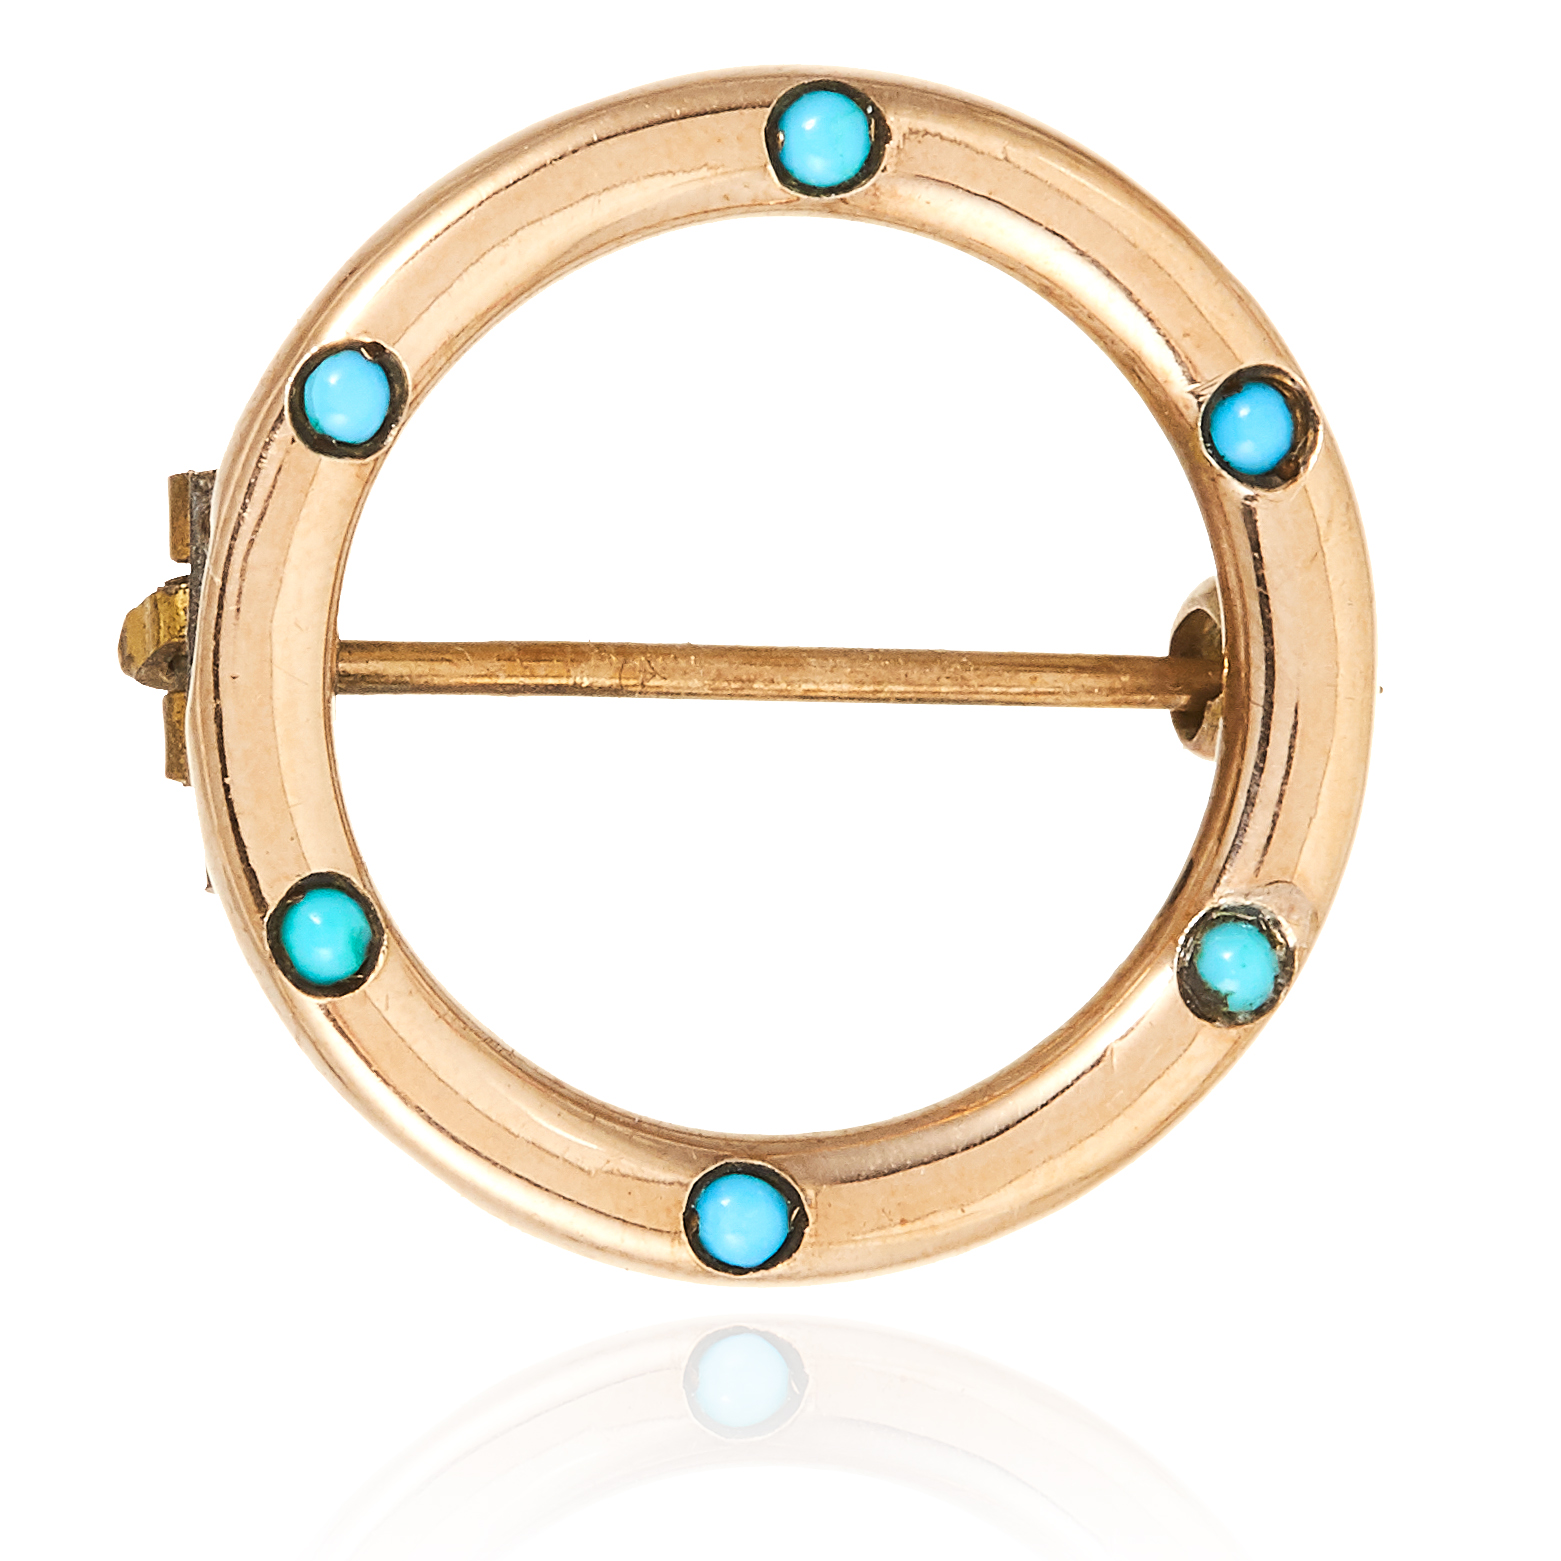 A TURQUOISE BROOCH / PENDANT in 9ct yellow gold, the circular face is jewelled with six turquoise